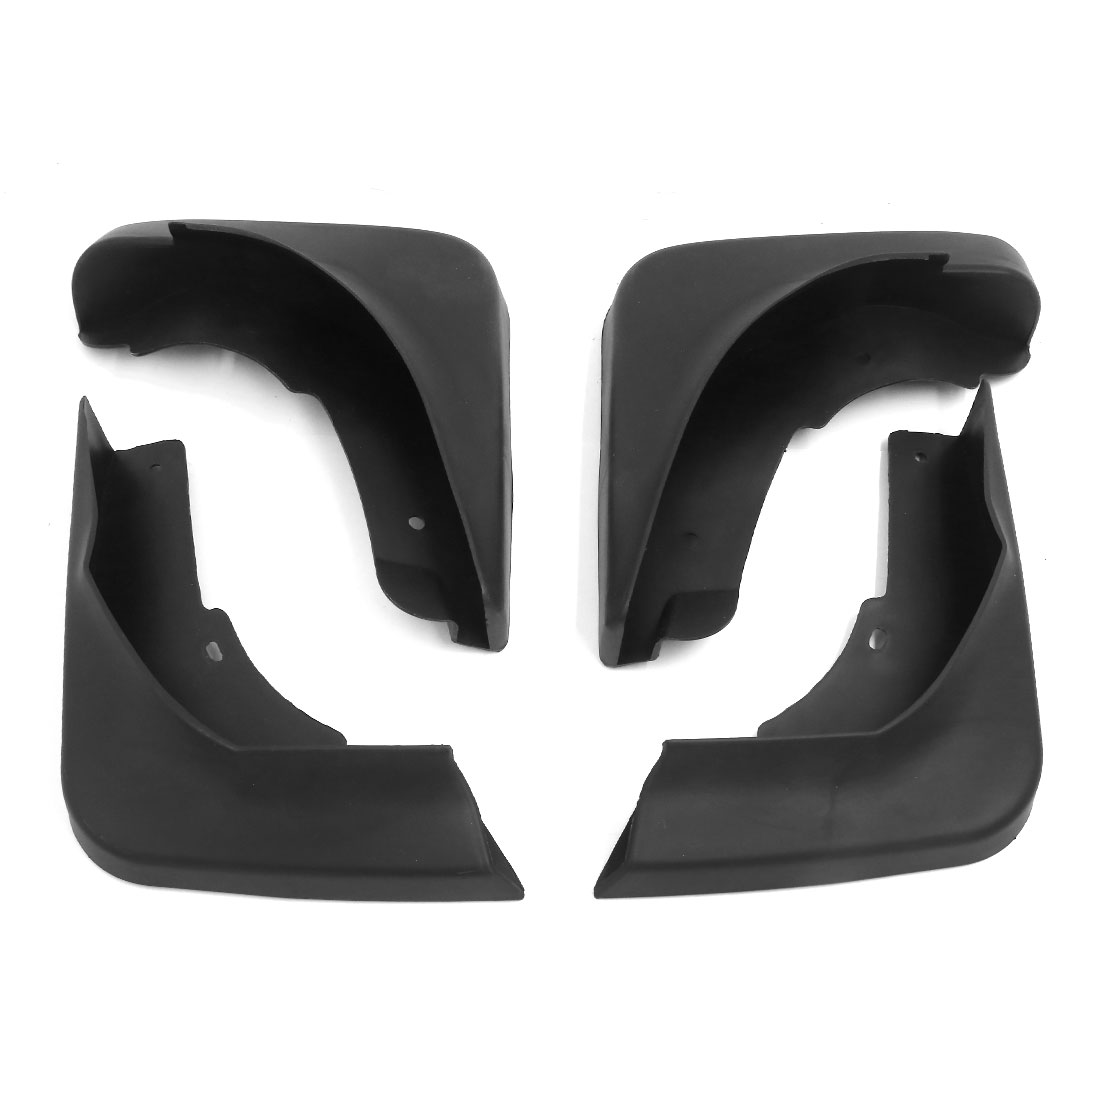 4PCS Black Front Rear Splash Guards Plastic Mud Flaps Set for Magotan